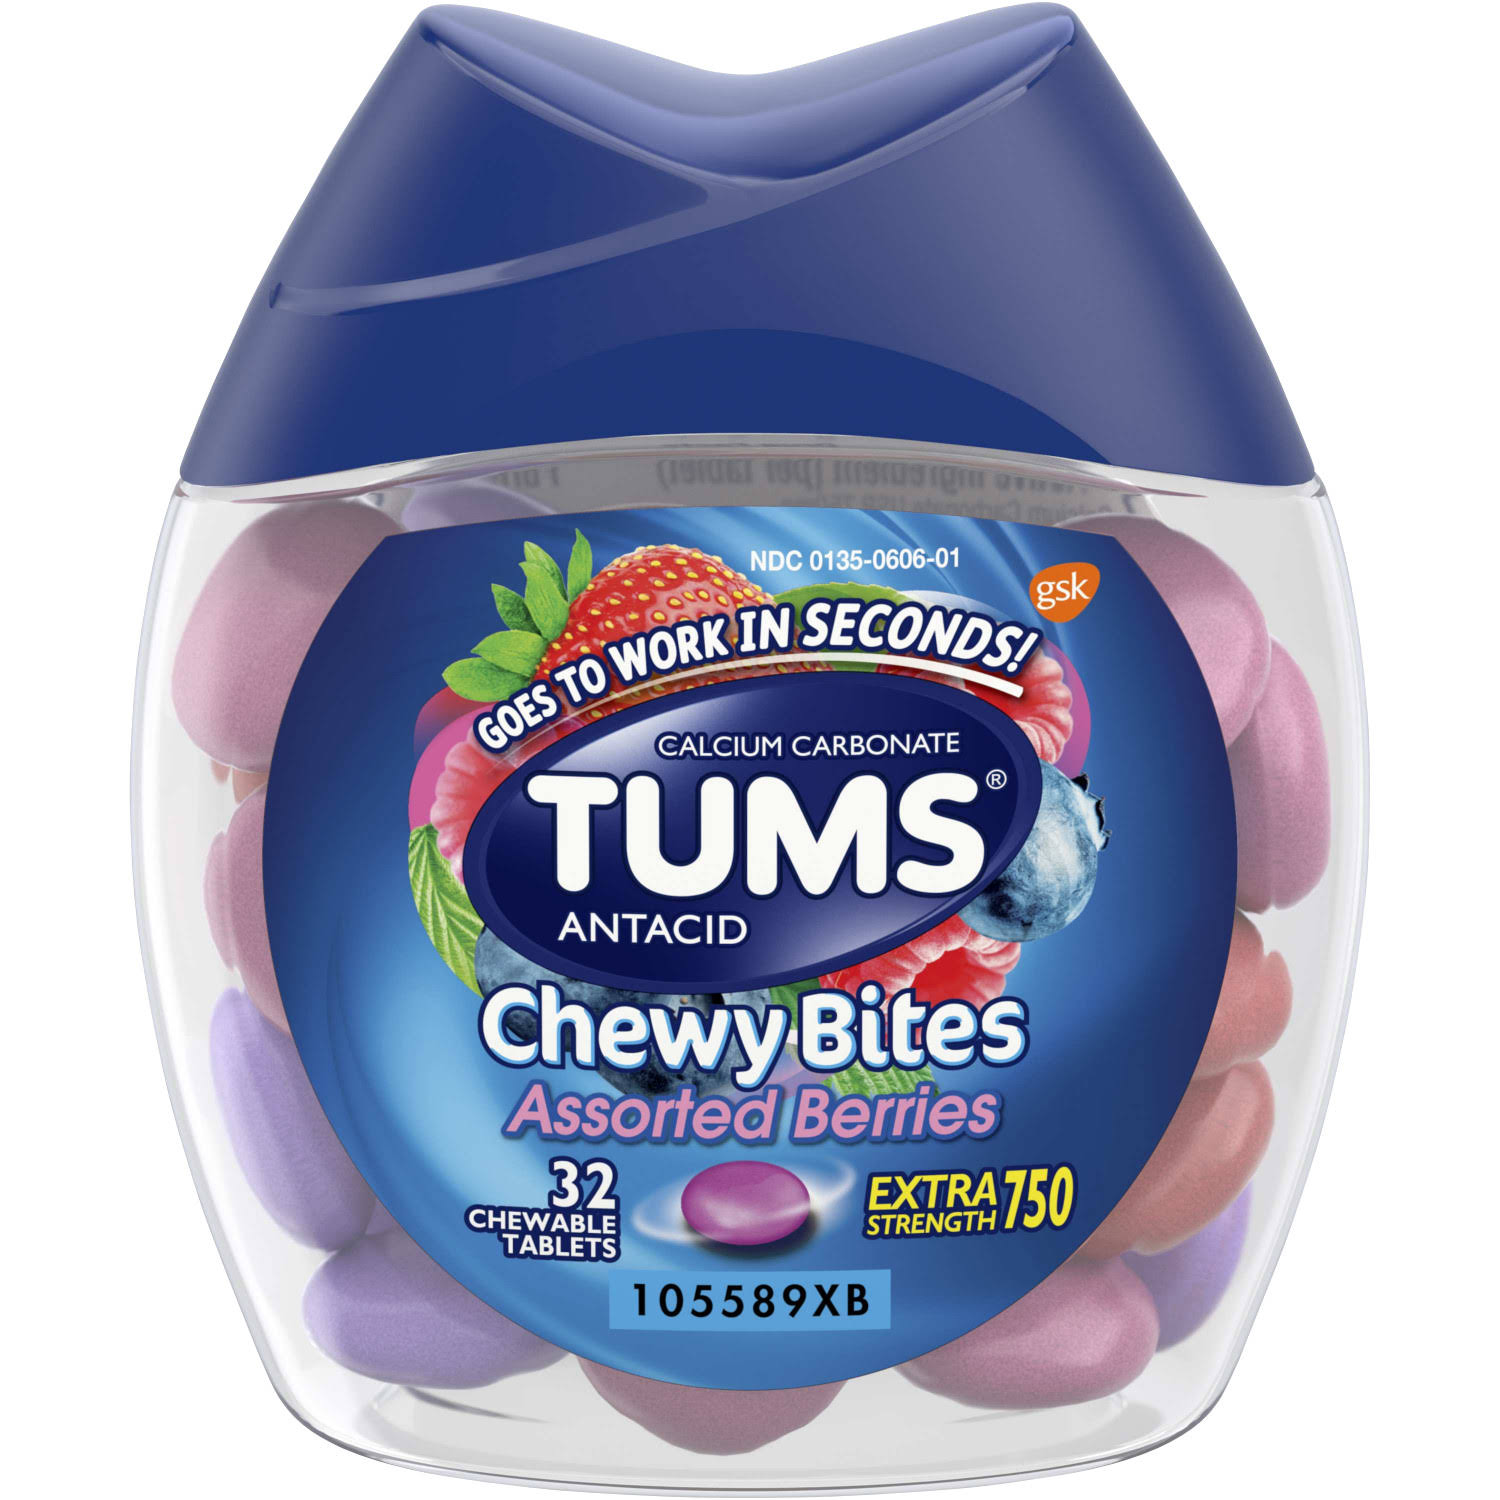 Gsk Tums Calcium Carbonate Antacid Chewy Bites - Assorted Berries, 32 Chewable Tablets